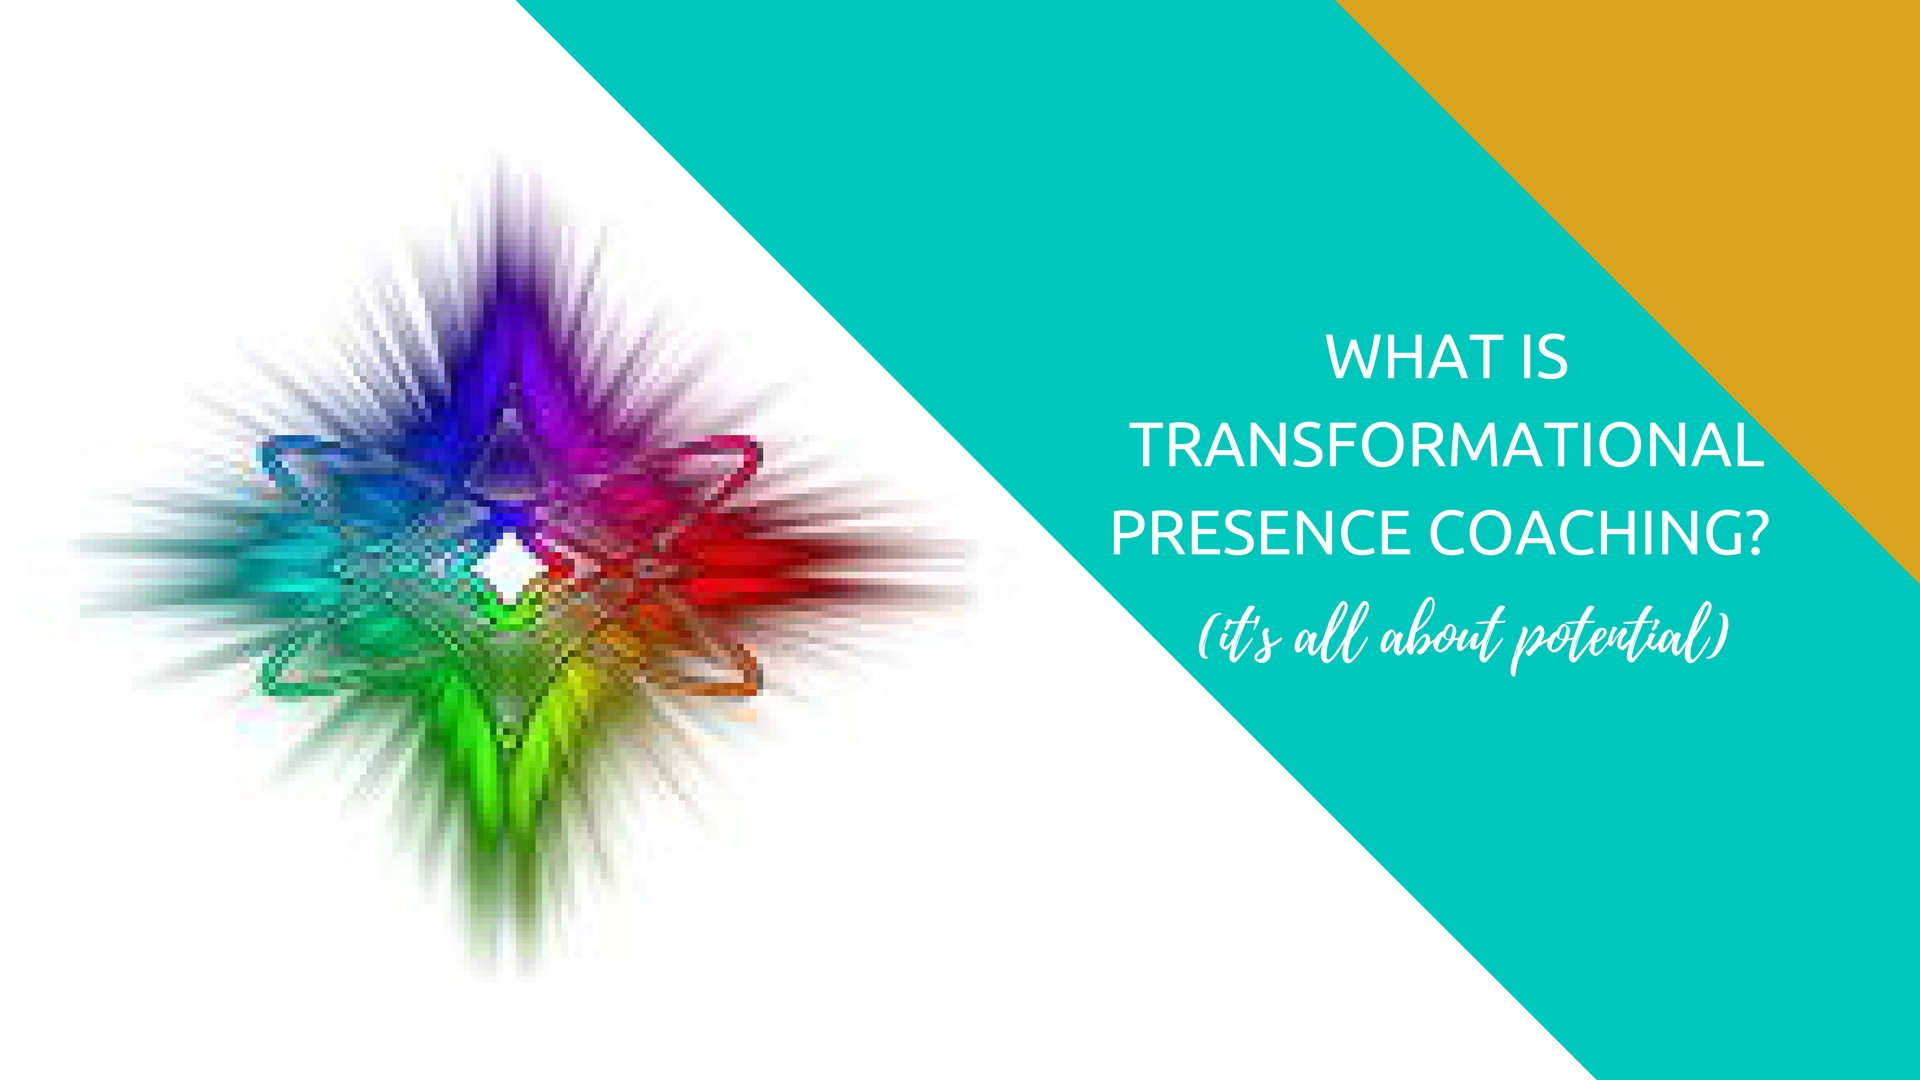 What is Transformational Presence Coaching?